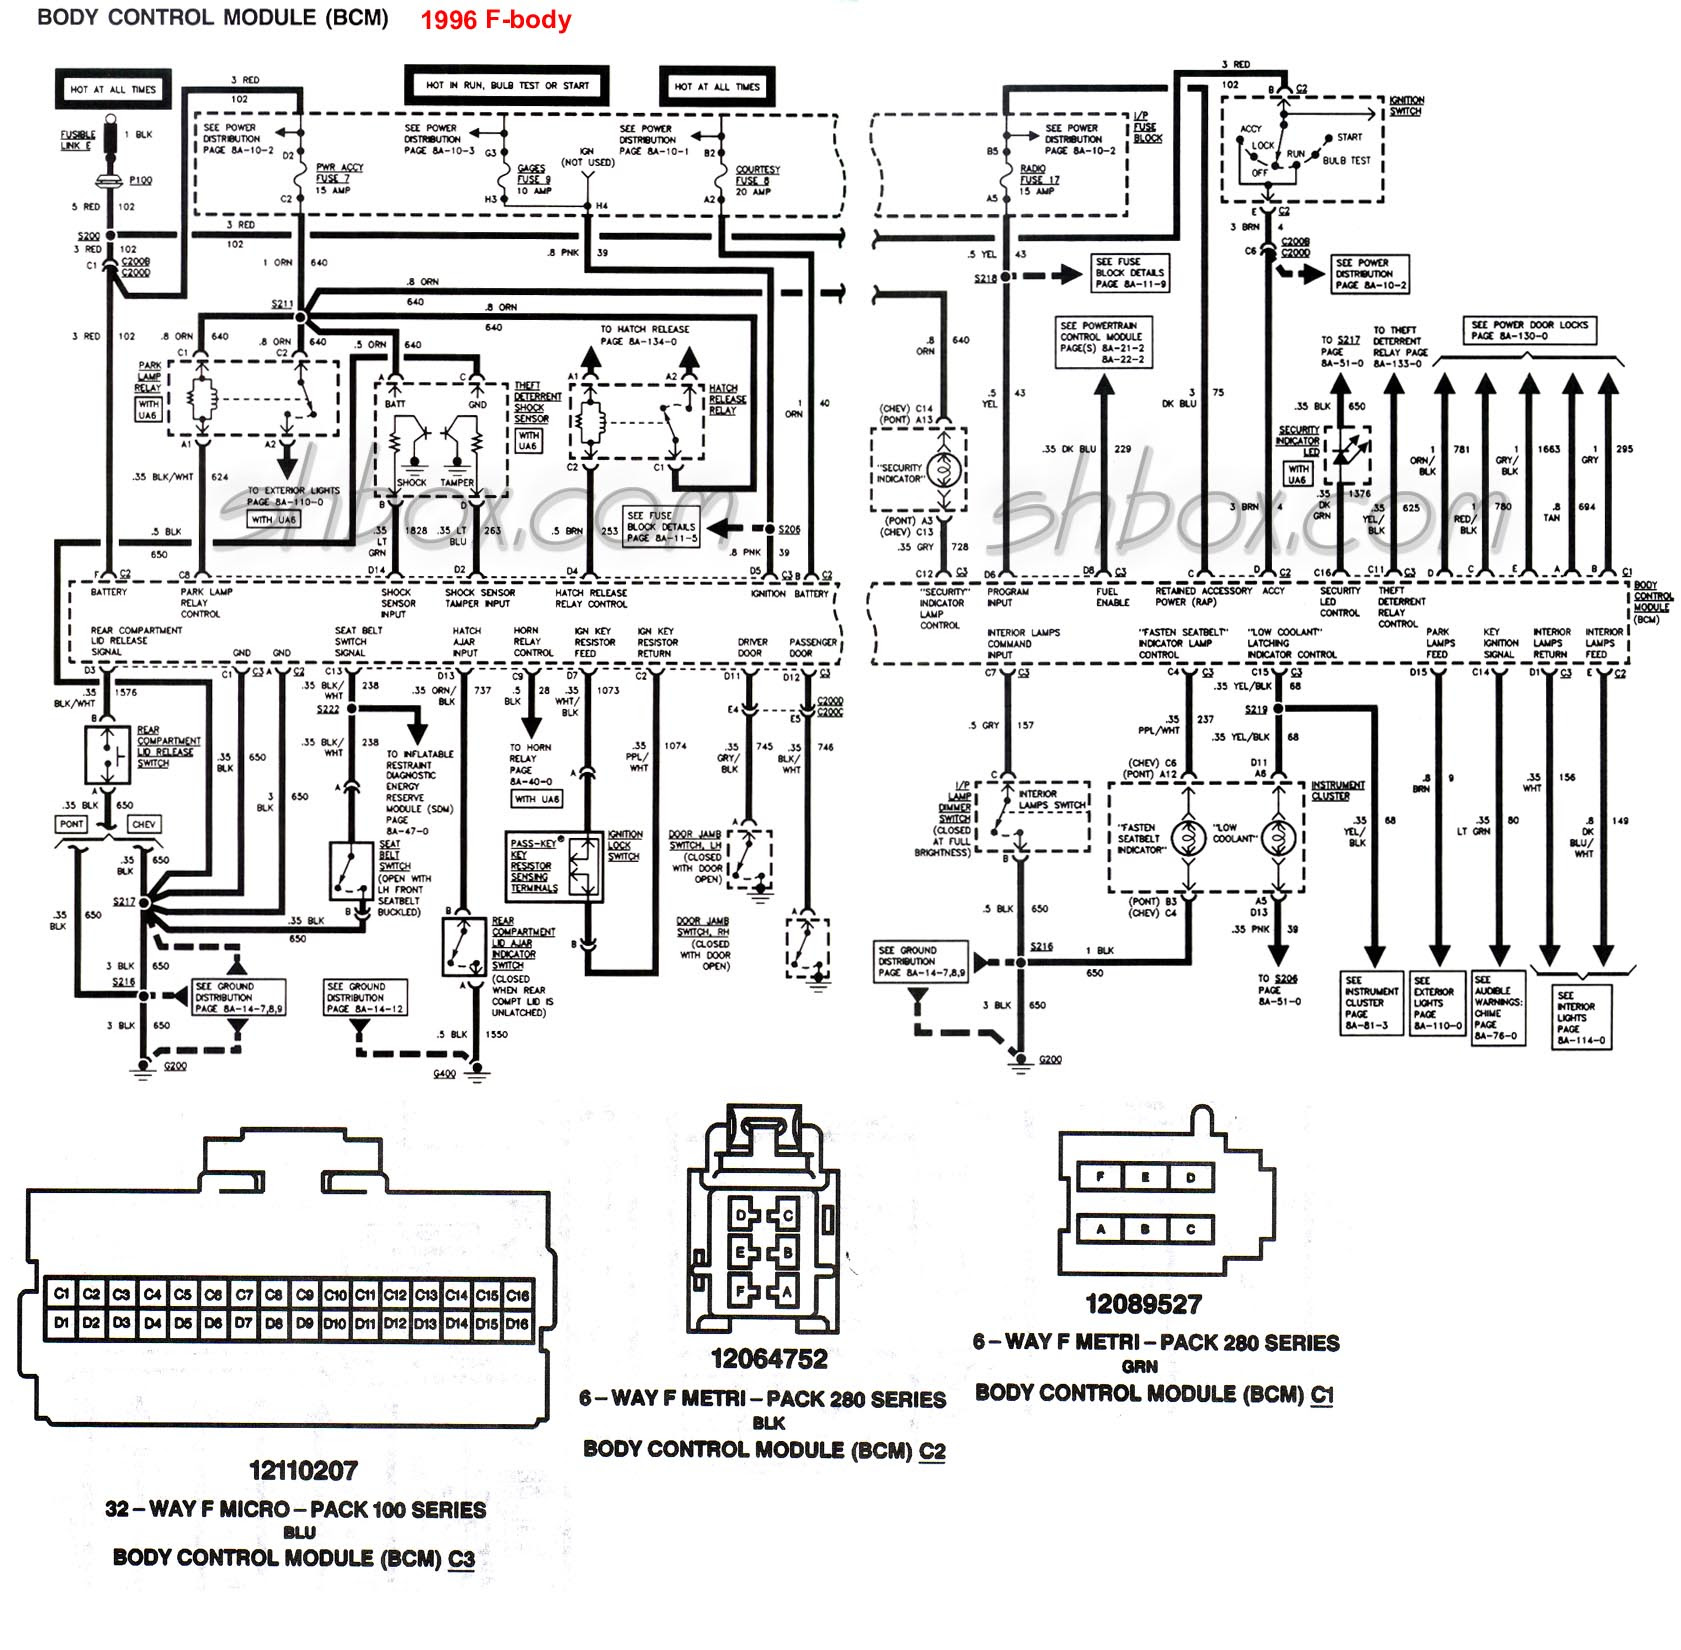 96 Gmc Sierra Engine Diagram Wiring Diagram Activity Activity Saleebalocchi It